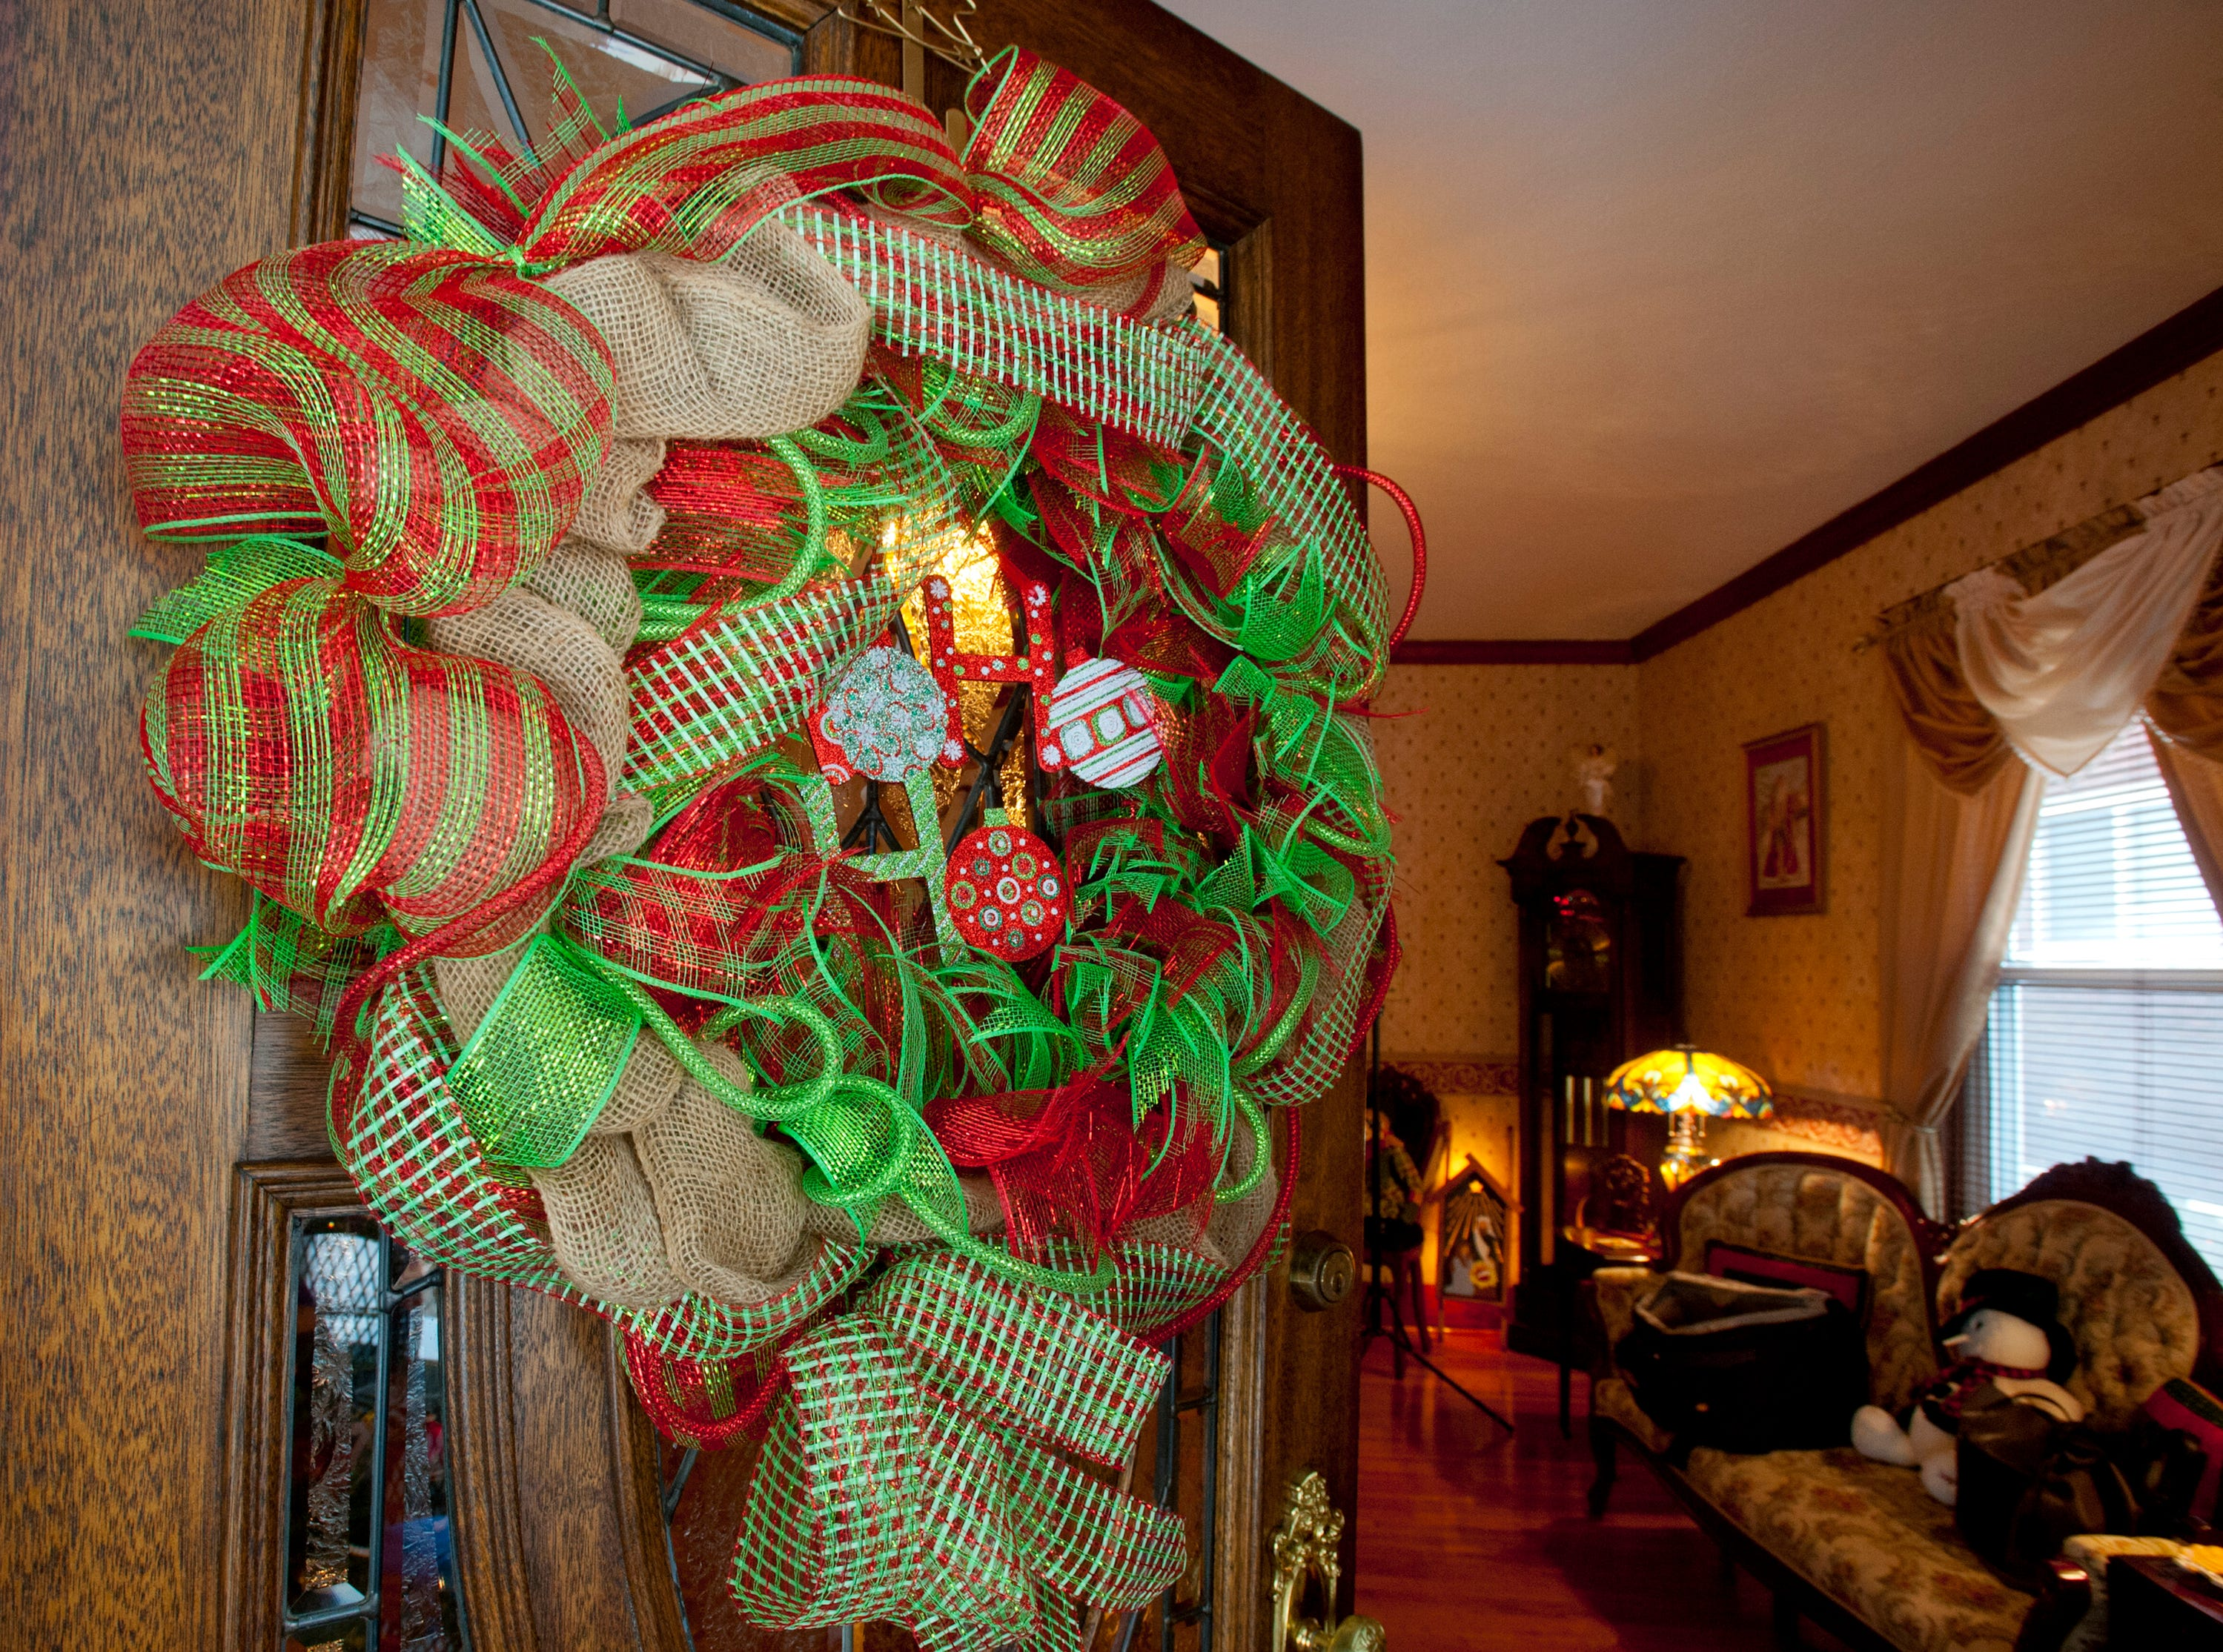 A large Christmas wreath welcomes visitors through the front door of Chis and Kerrie Clifford's Portland home.